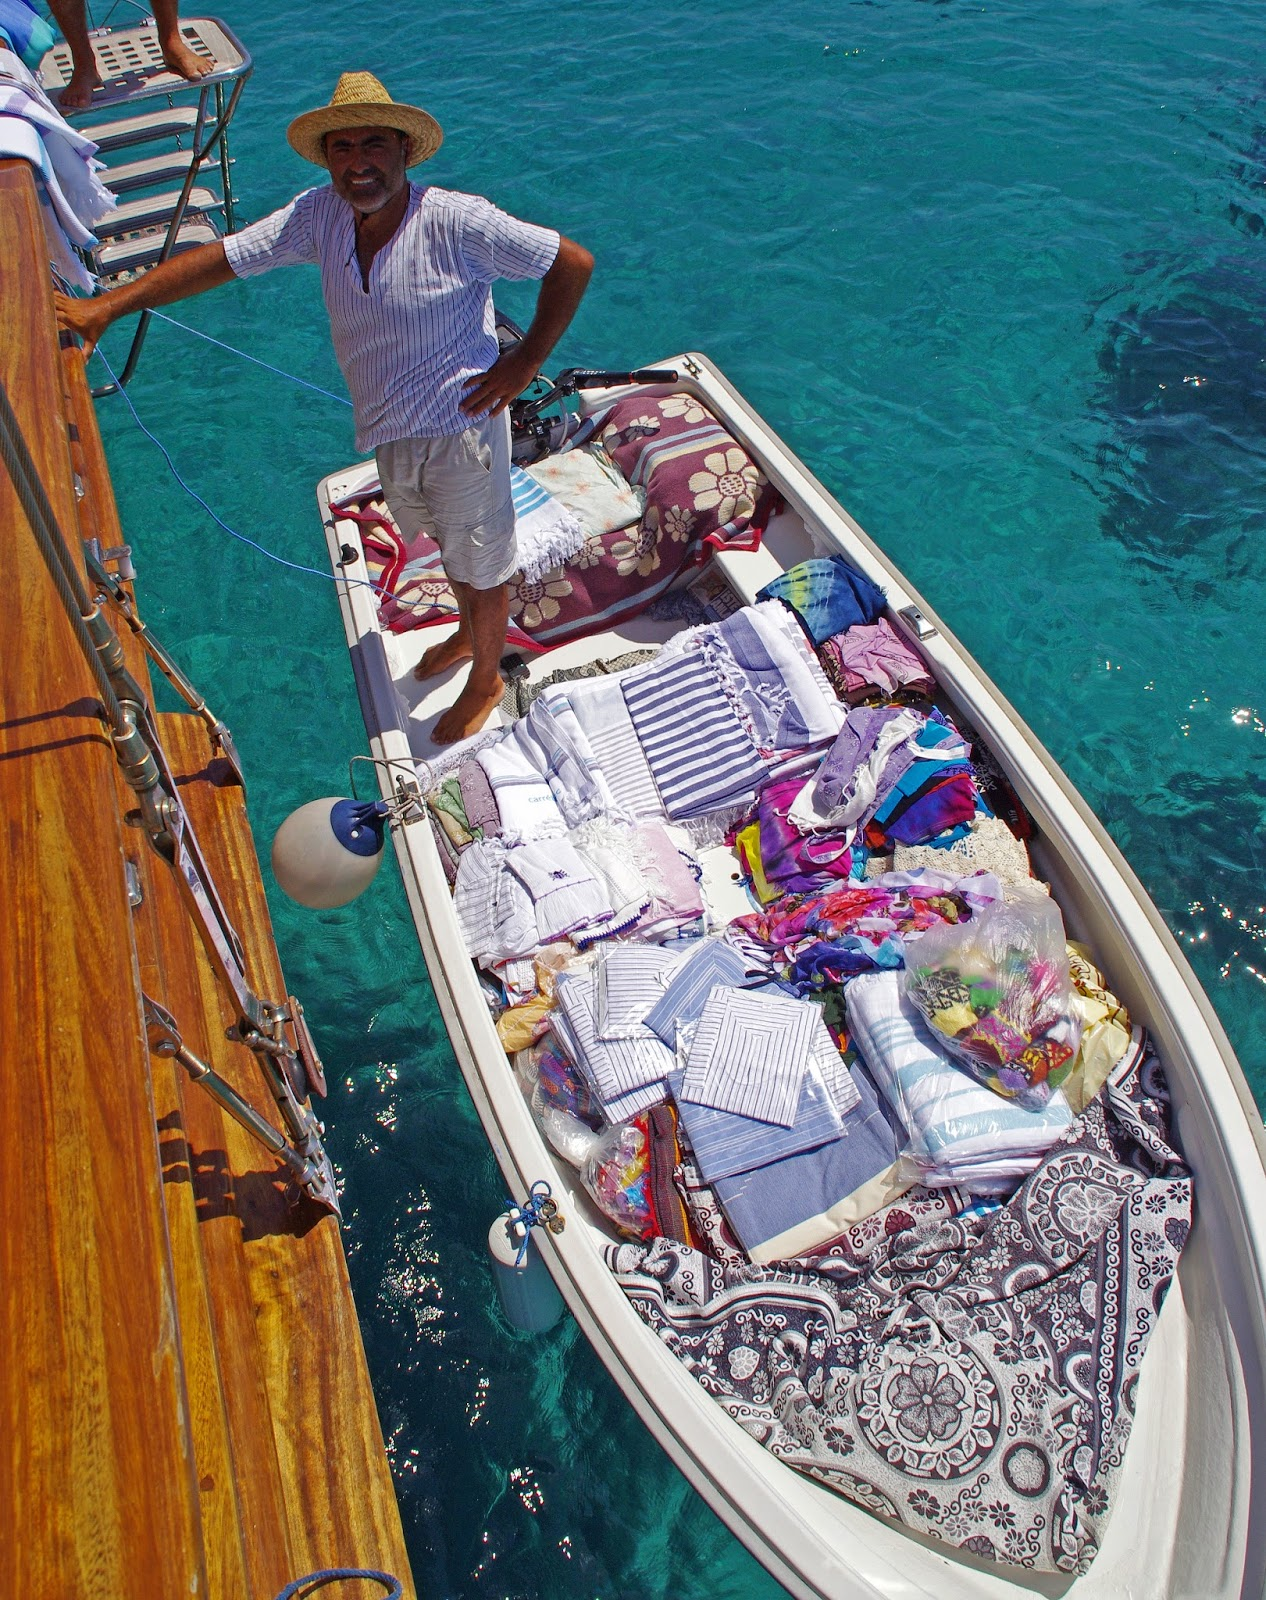 Buying Towels while sailing in Turkey